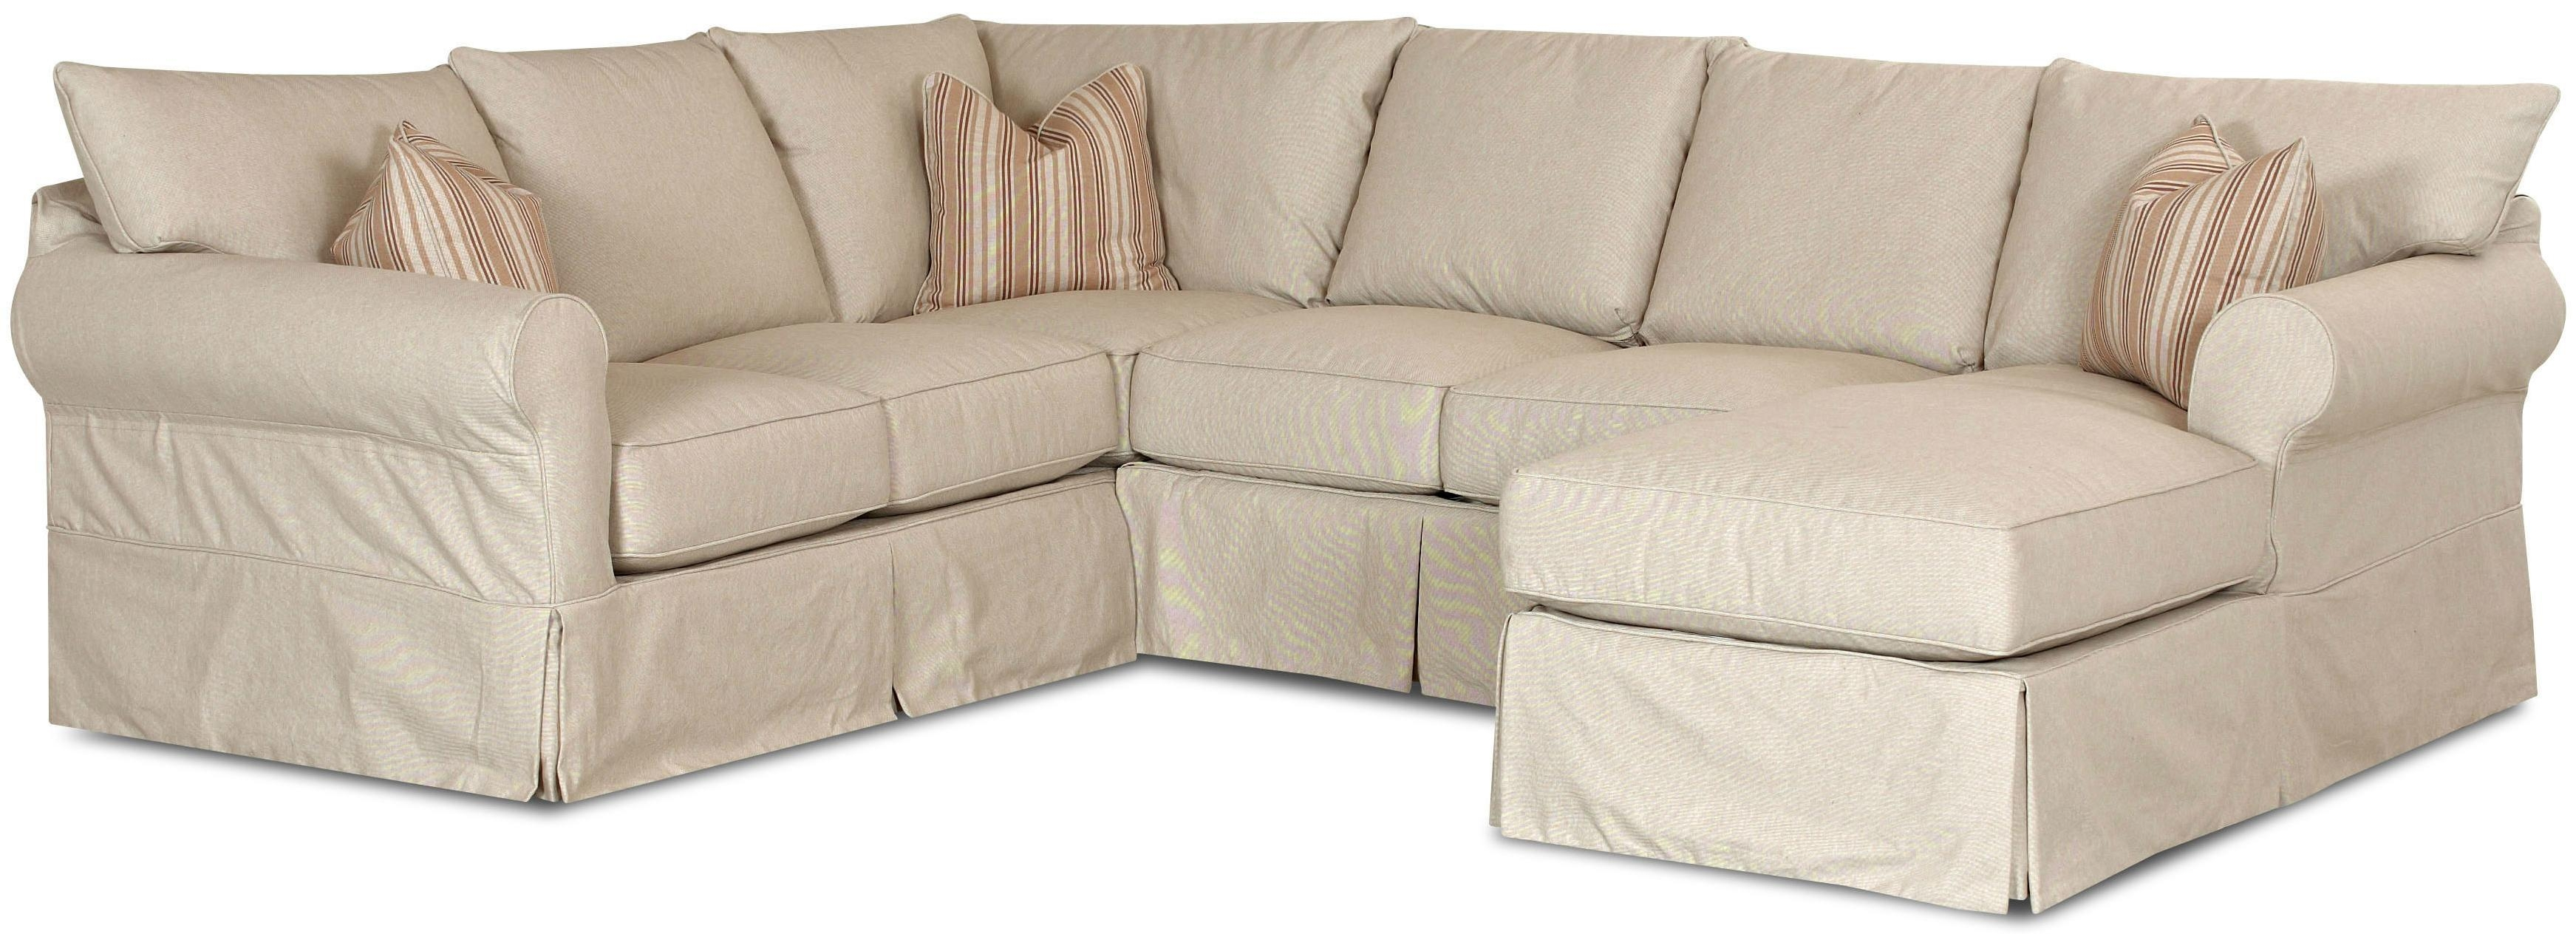 20 Best Ideas 3 Piece Sectional Sofa Slipcovers